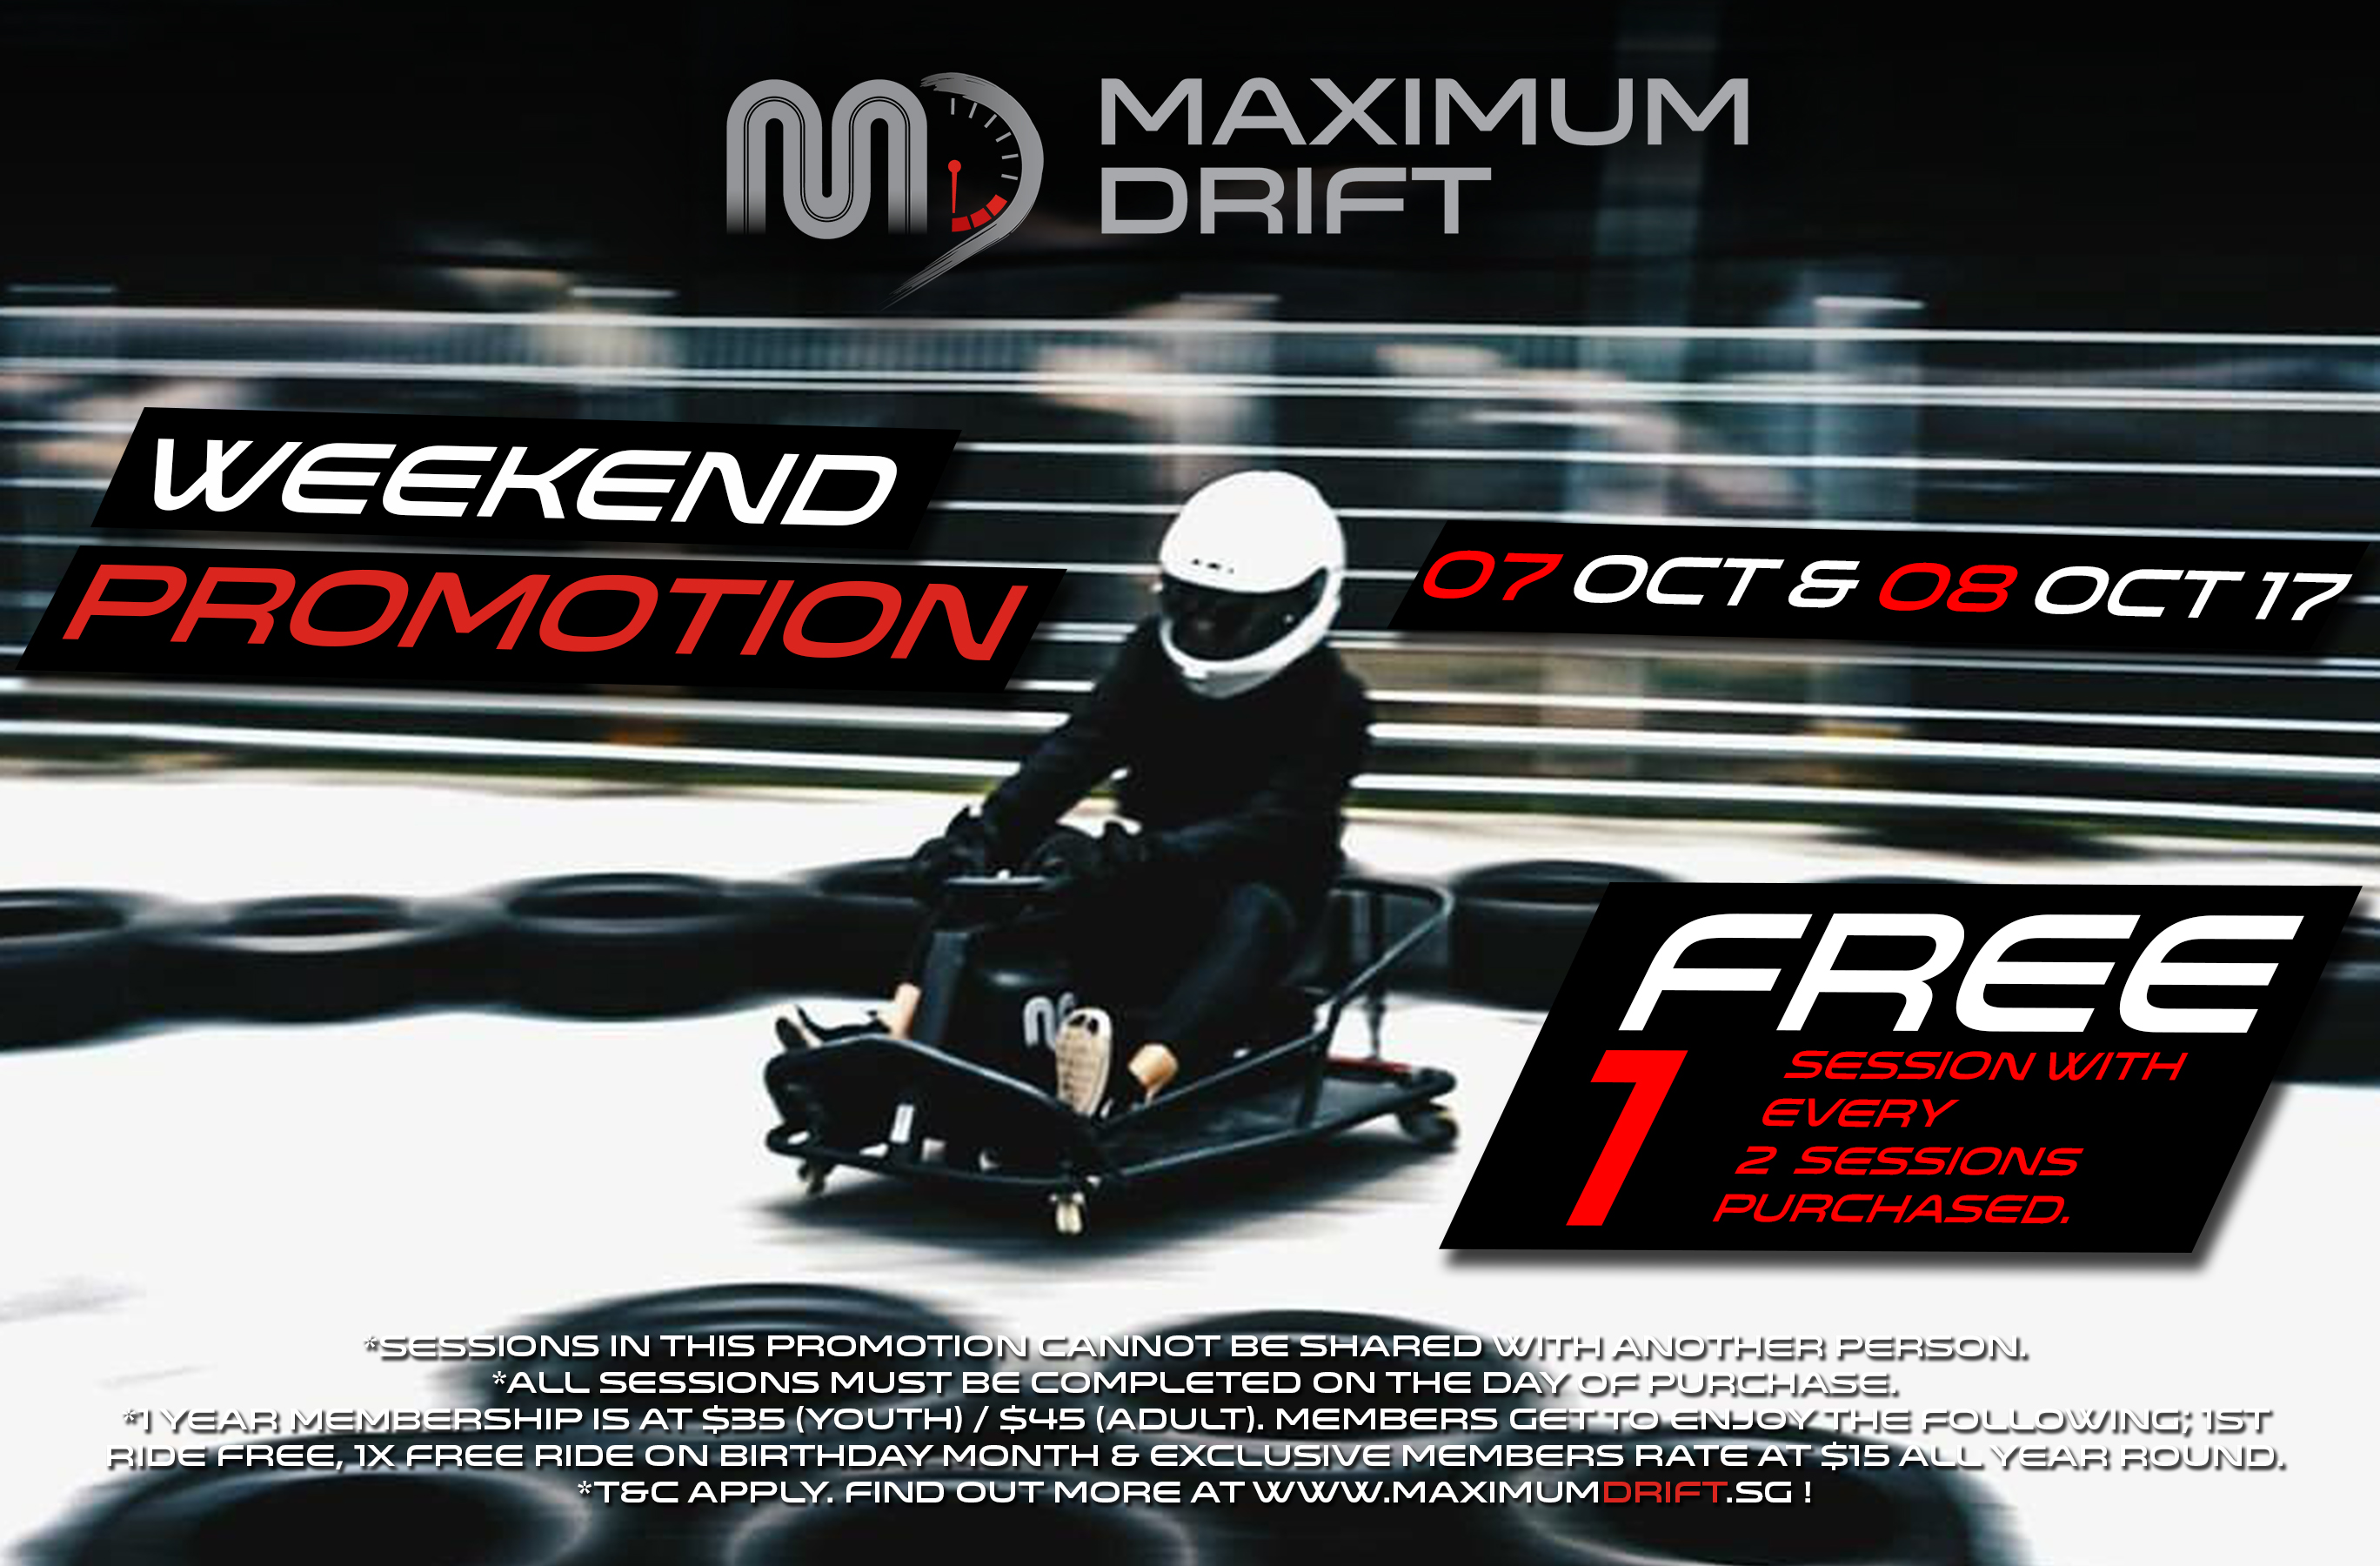 Maximum Drift Weekend Promotion!